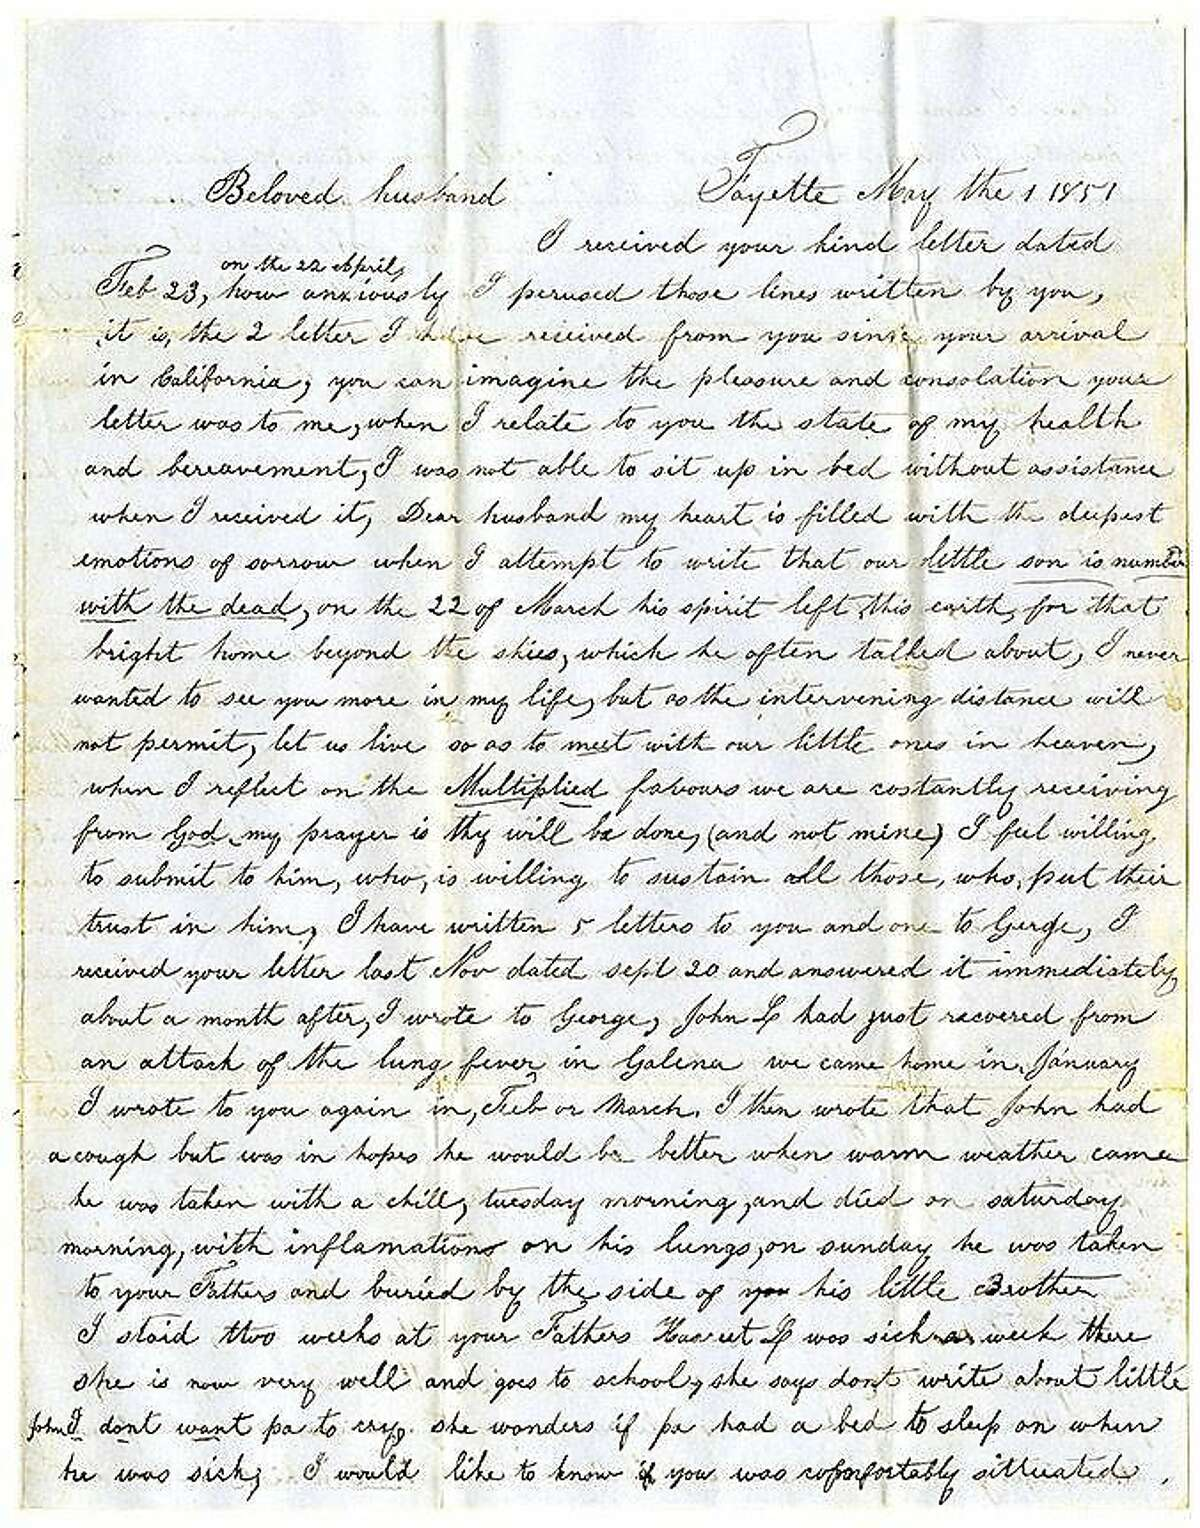 Mary Monroe, handwritten letter to William Monroe, May 1, 1851.